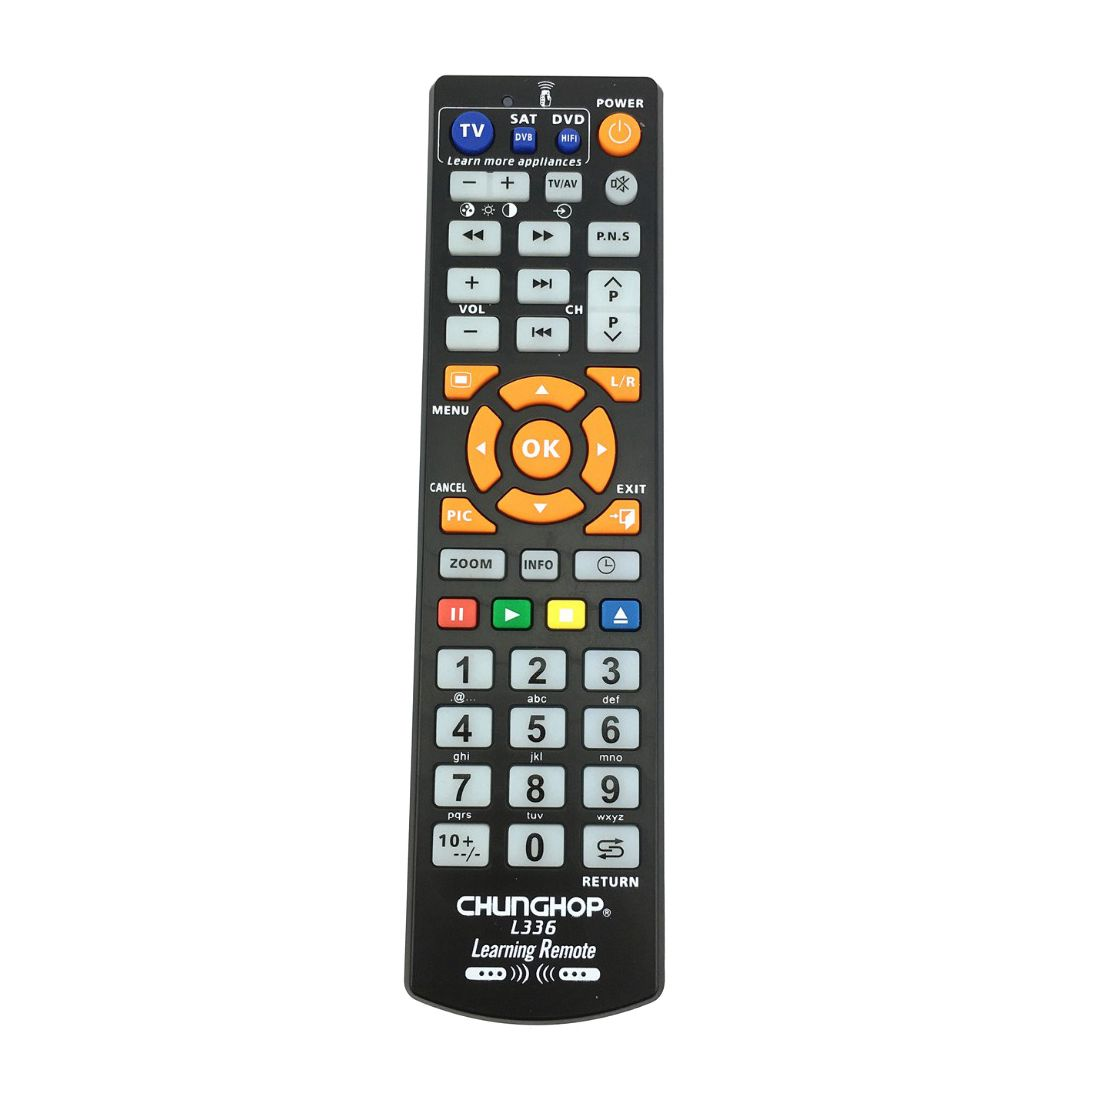 CHUNGHOP L336 Copy Smart Remote Control Controller With Learn Function For TV CBL DVD SAT learning universal smart remote control controller with learn function for tv dvd sat cbl drop shipping